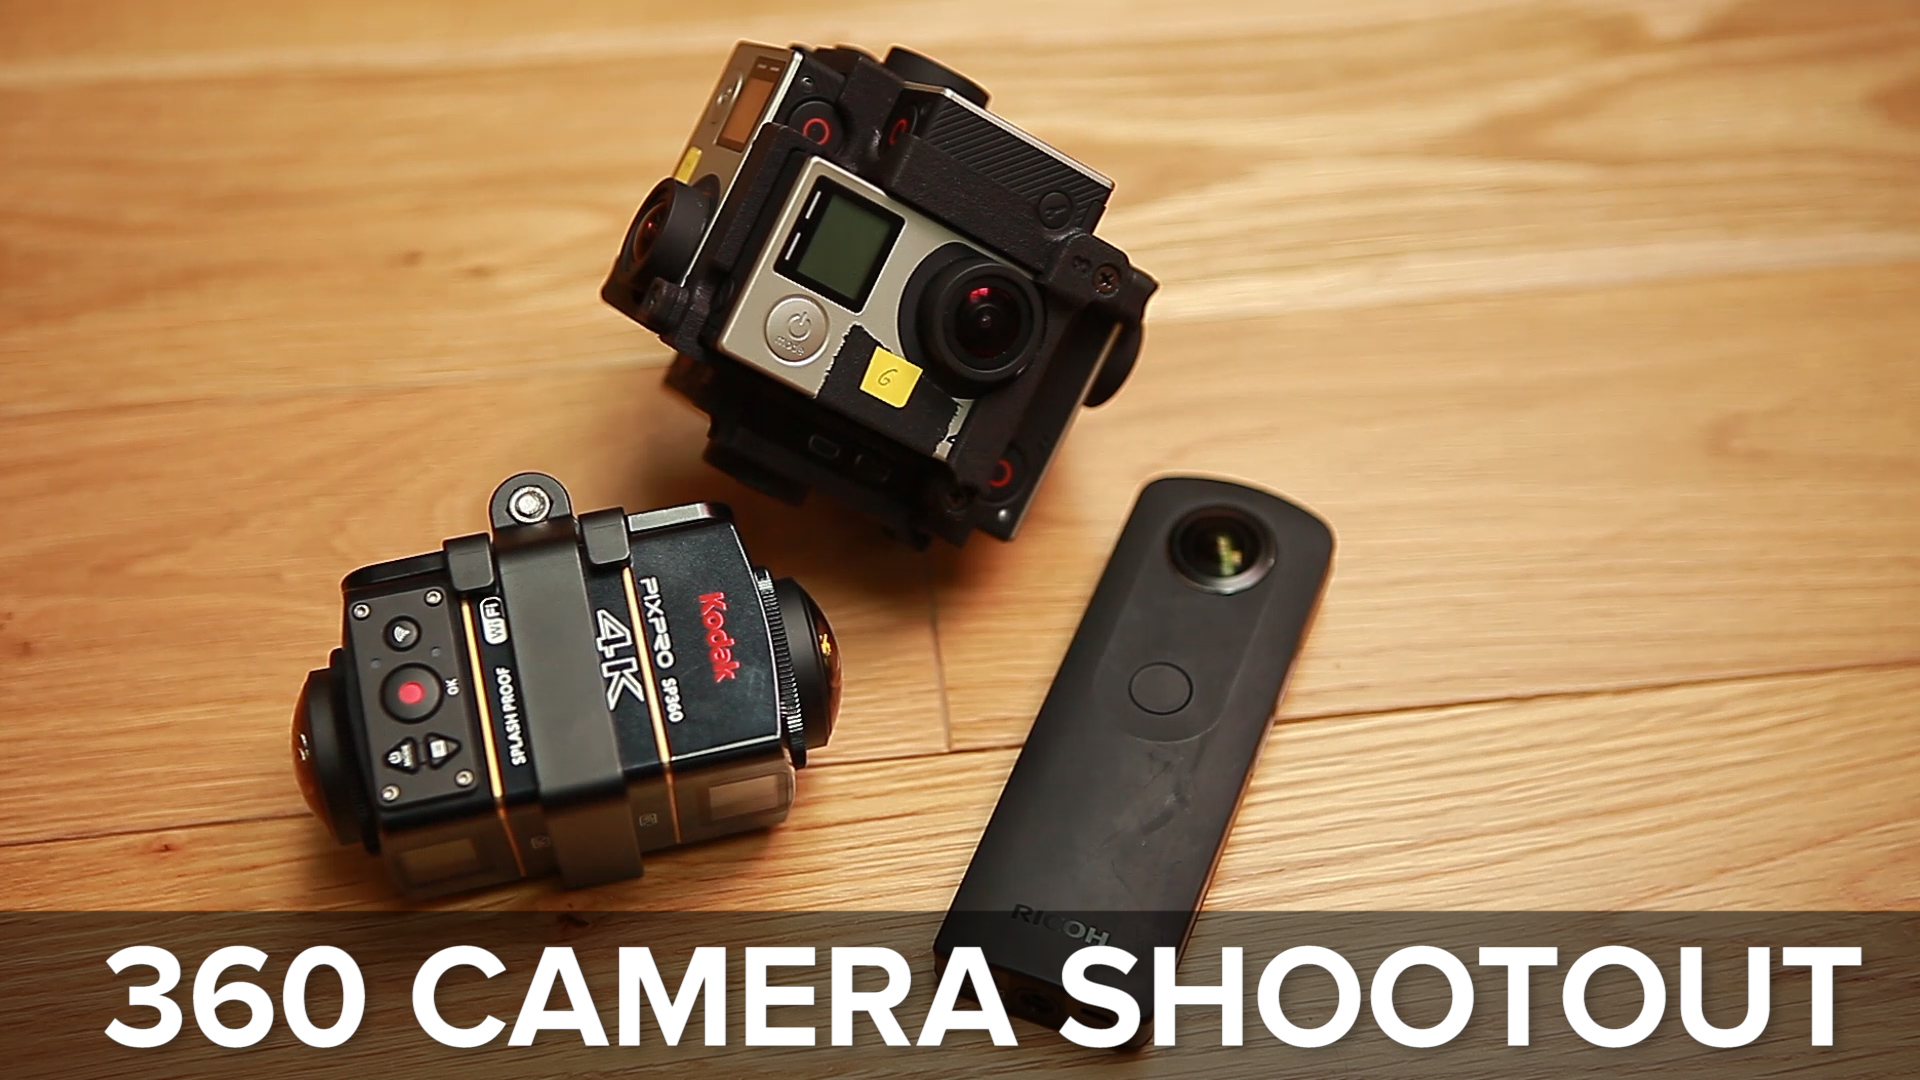 Video: GoPro, Pixpro, or Ricoh? Finding the best 360 camera